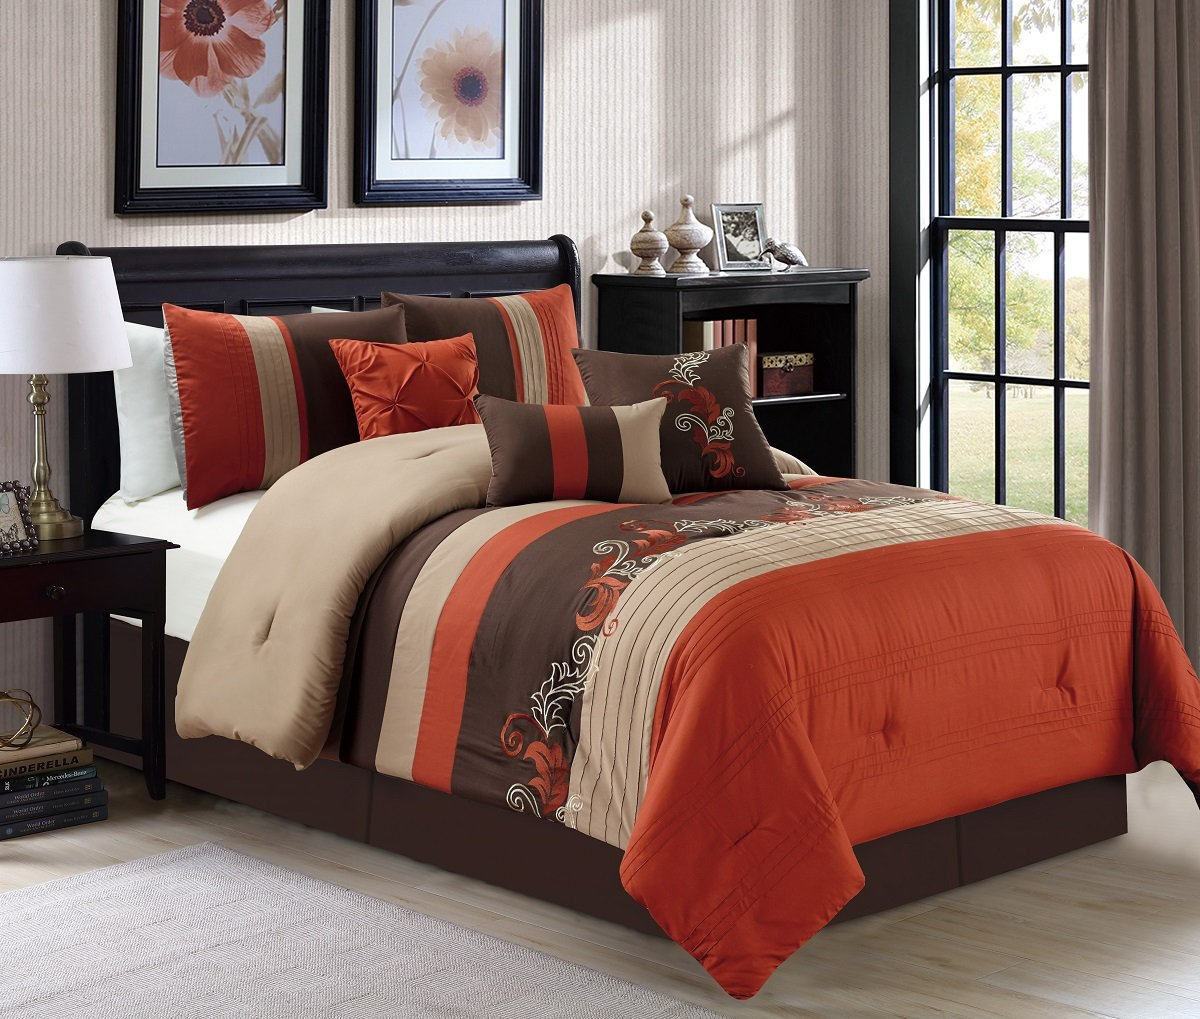 Napa by Chezmoi Collection - 7-piece Luxury Leaves Scroll Embroidery Bedding Comforter Set King, Rust Orange/Taupe/Brown